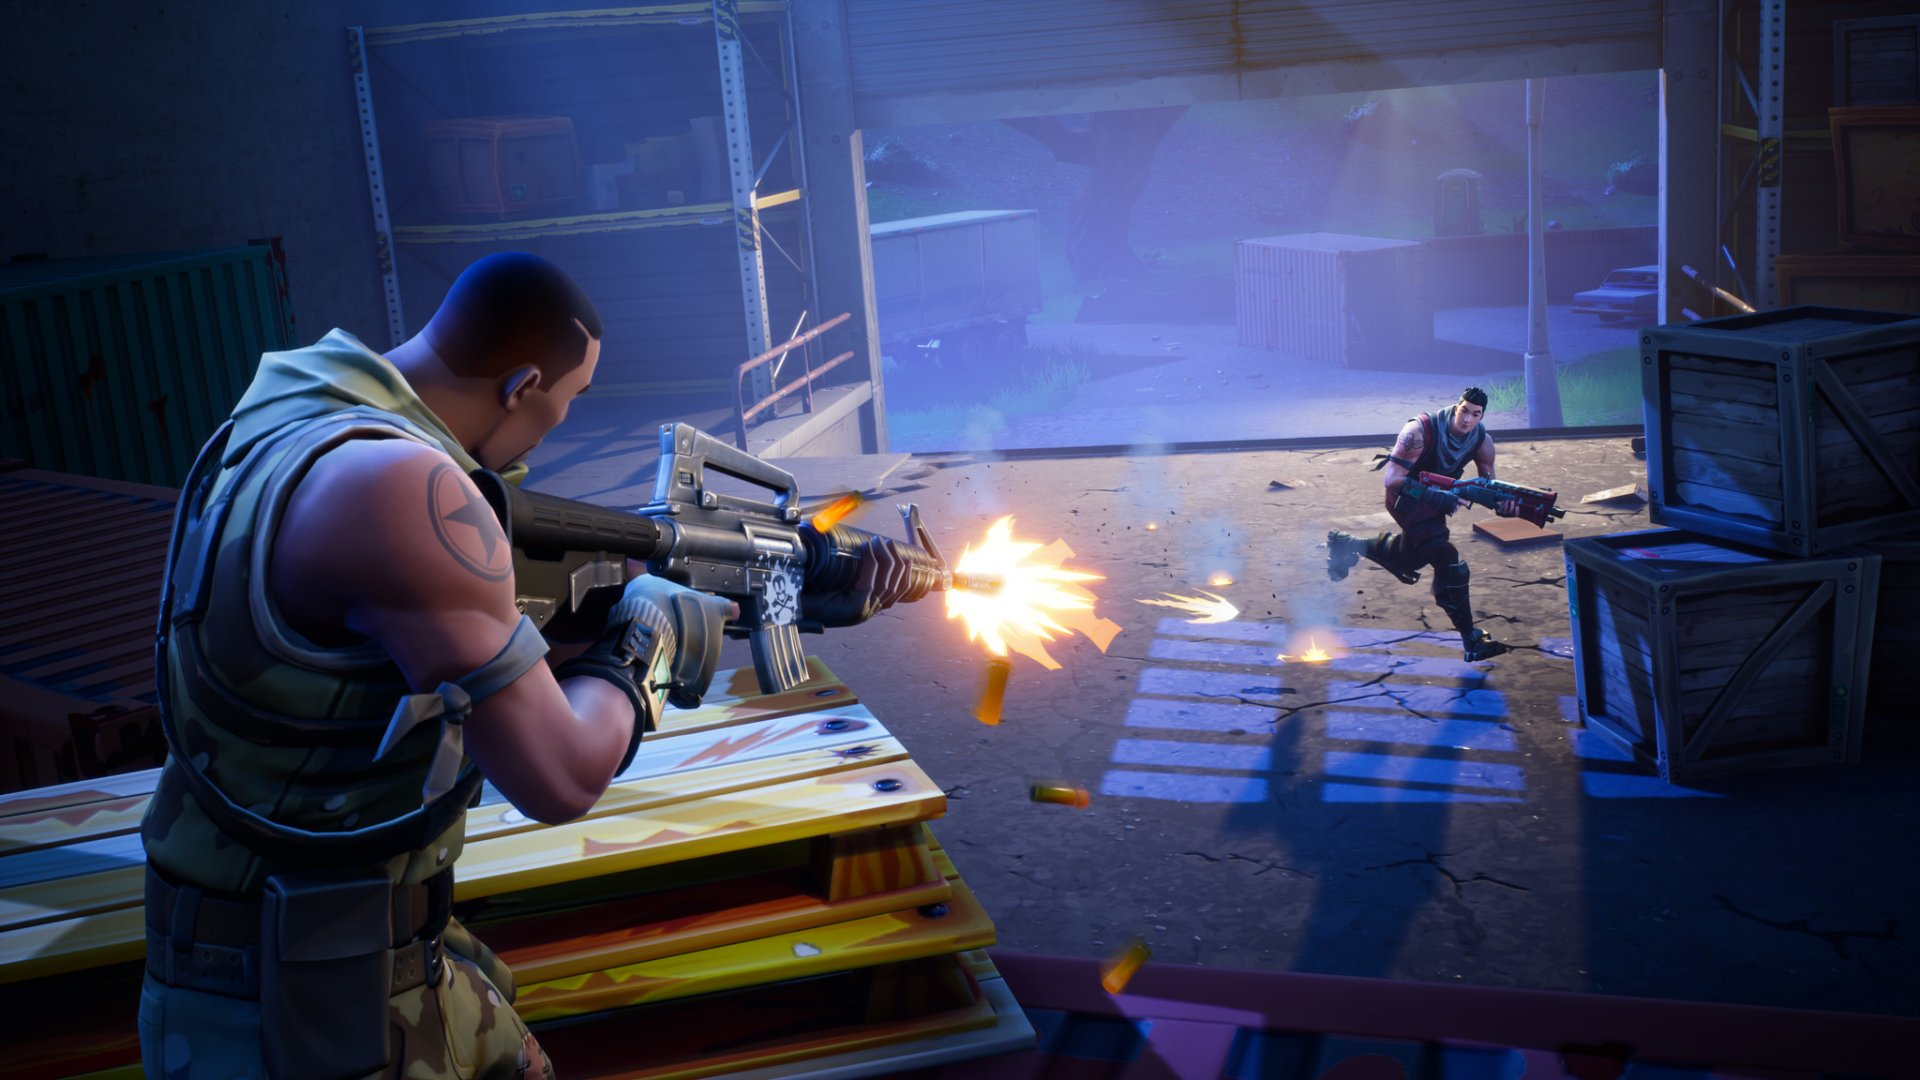 45 million people are playing the game Fortnite.